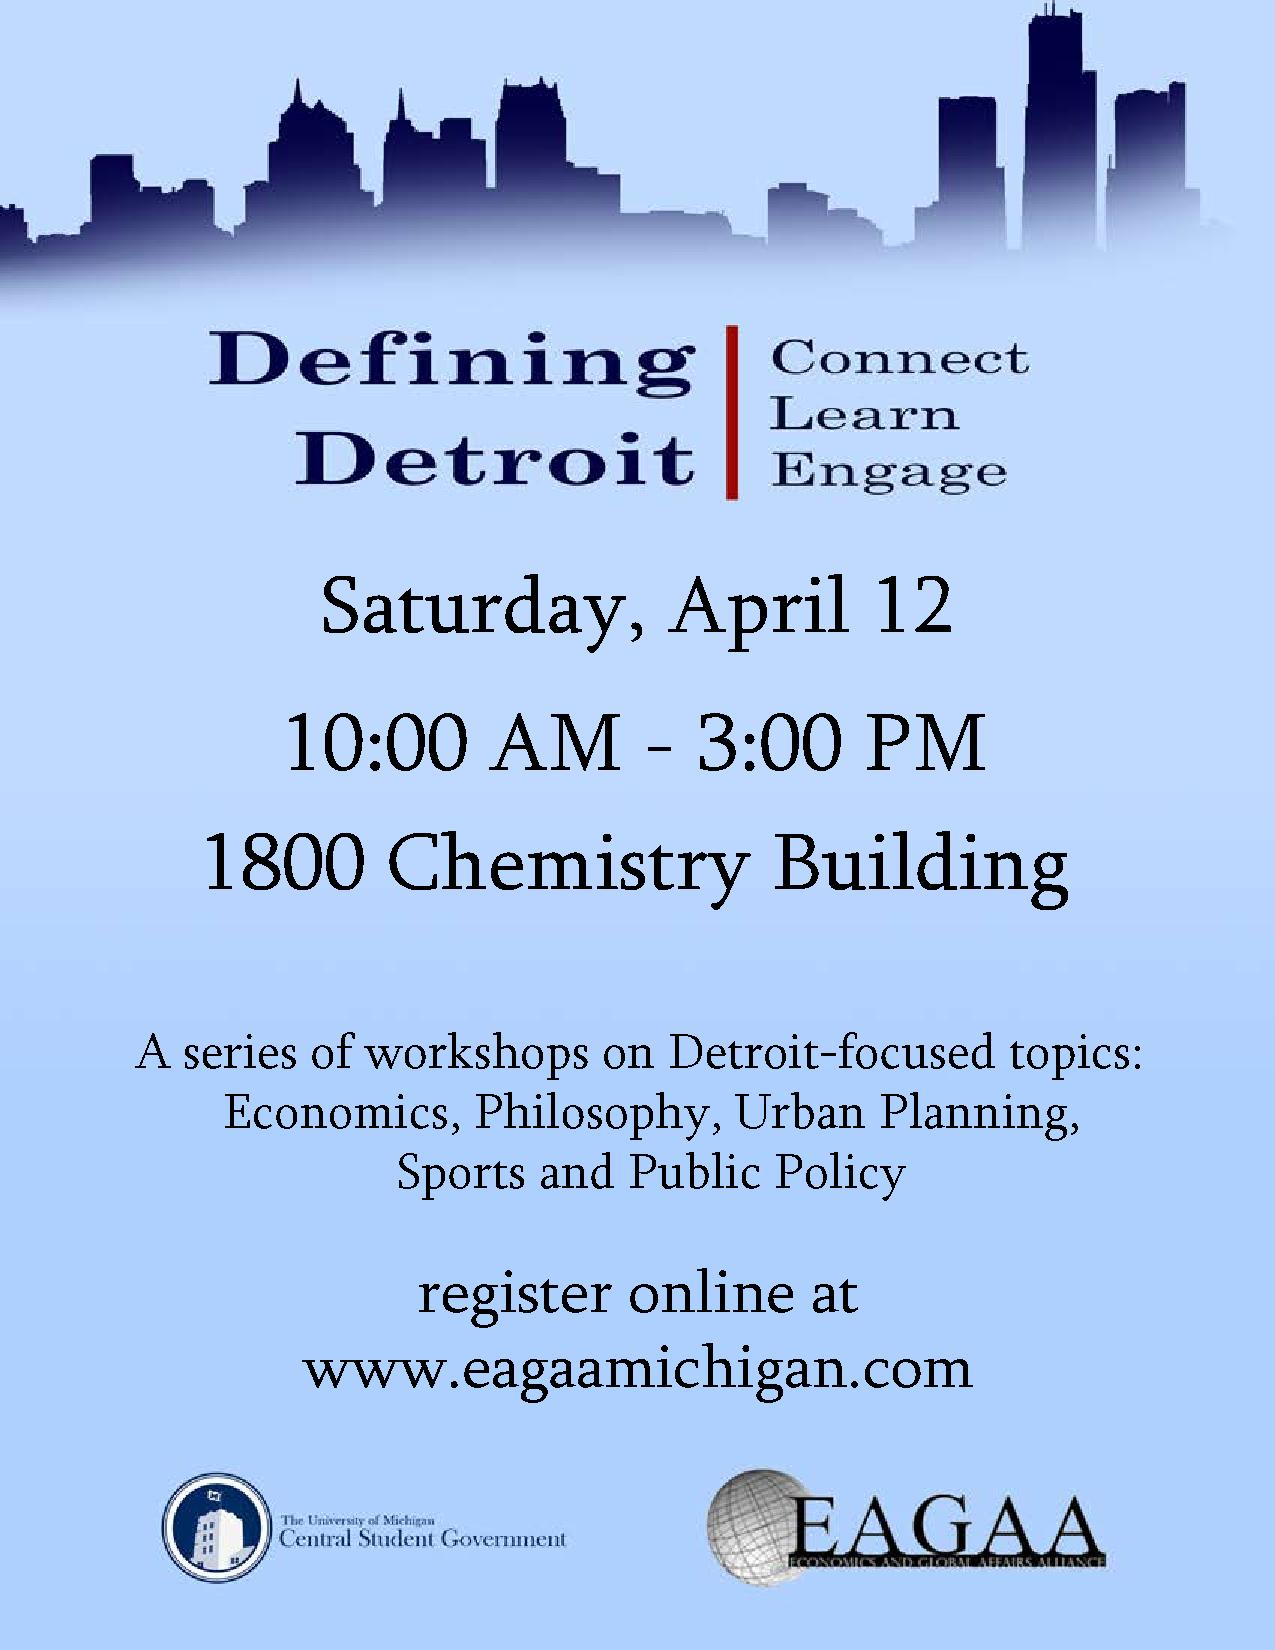 Invitation to the Defining Detroit Conference Campus Involvement